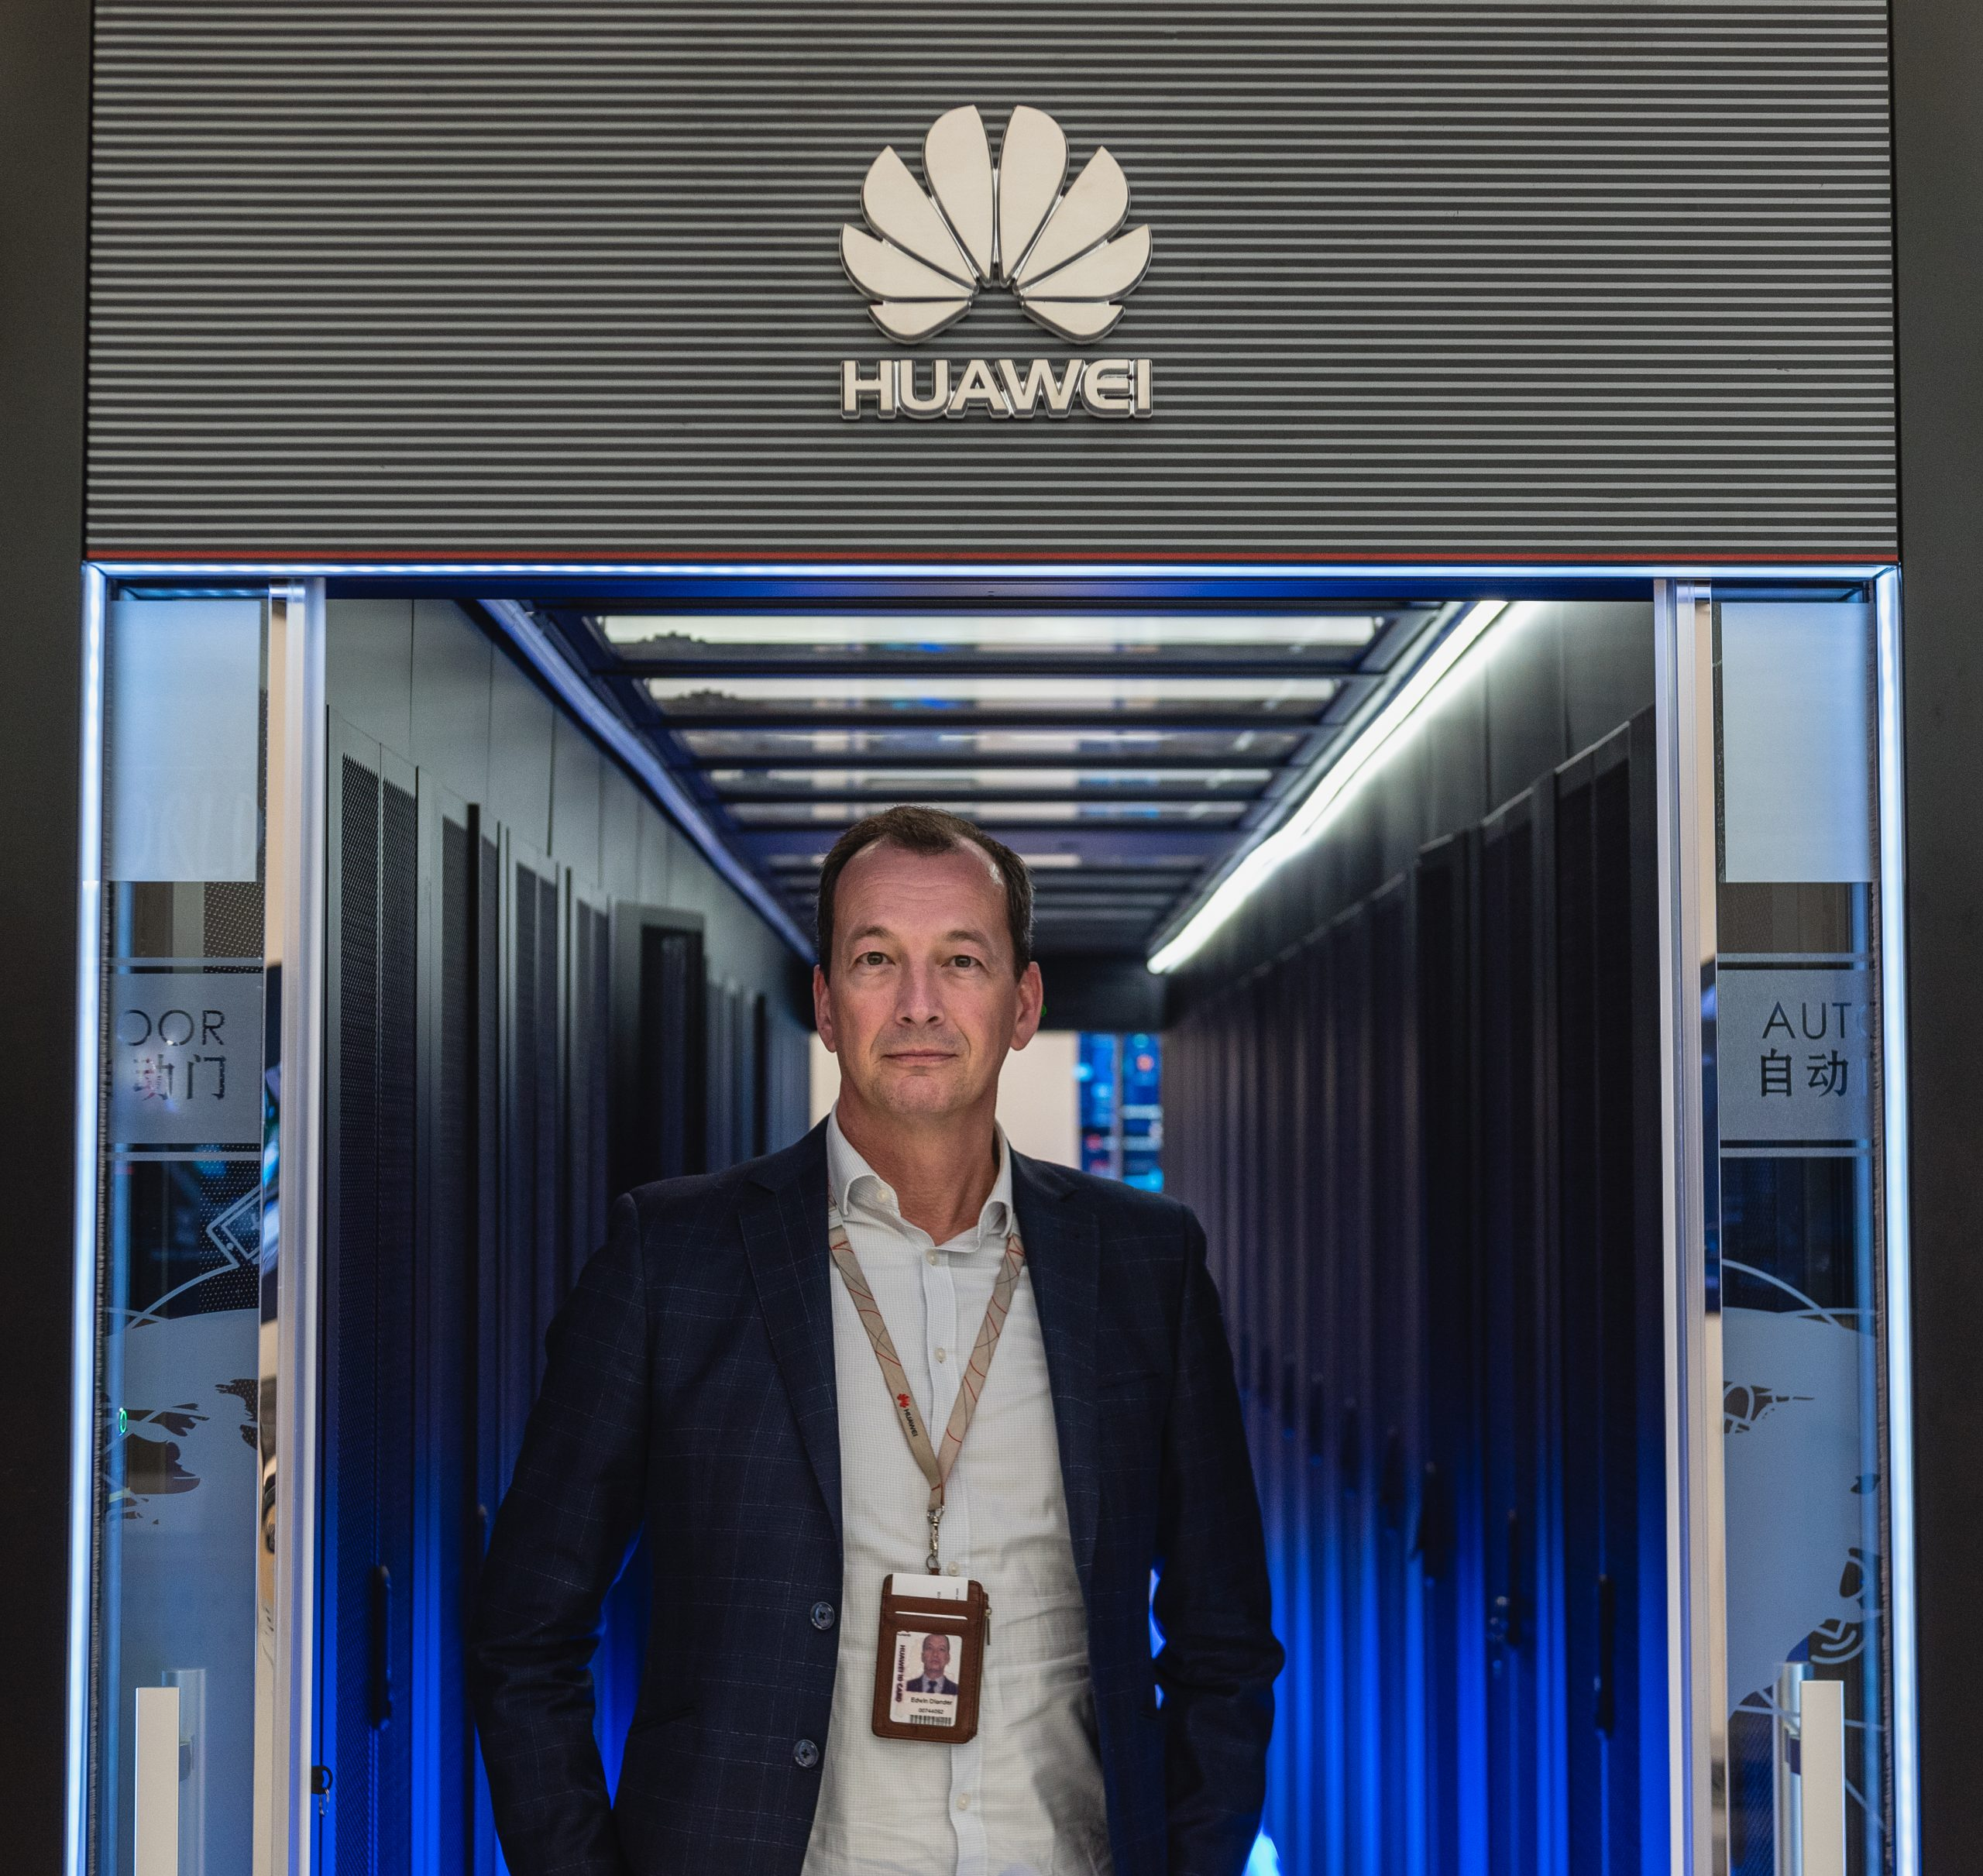 Edwin Diender, Chief Digital Transformation Officer von Huawei, posiert für ein Porträt neben Cloud-Datenspeichereinheiten. Foto: Aidan Marzo